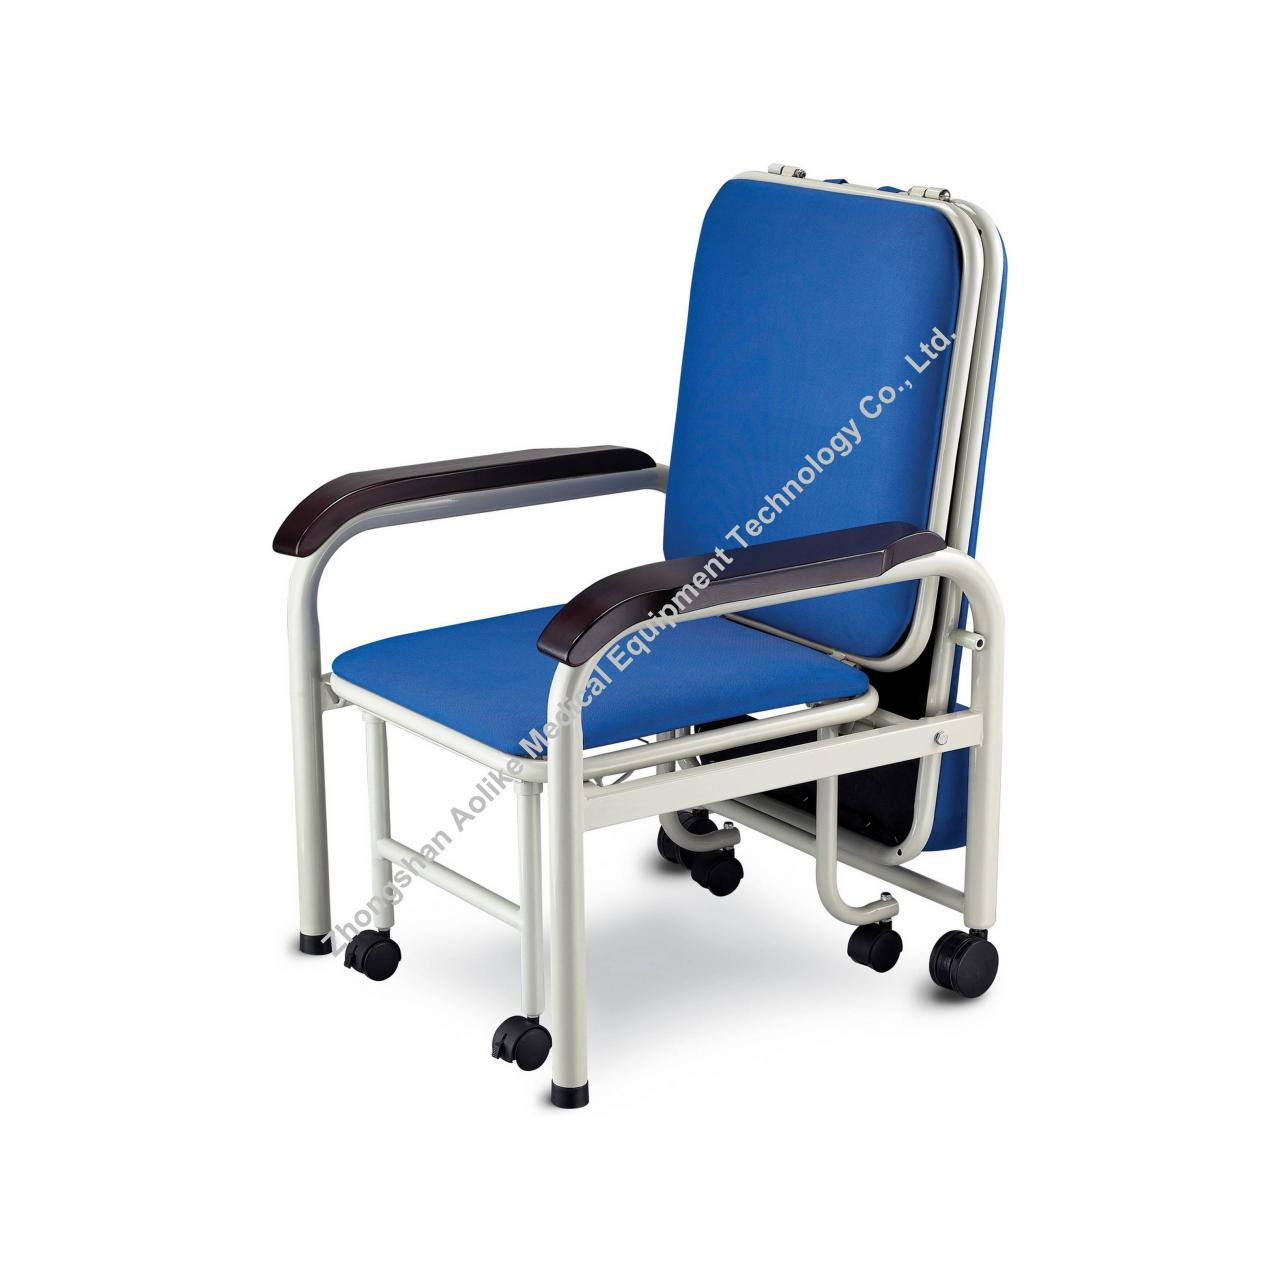 Quality Hospital Chairs Nursing chair for sale